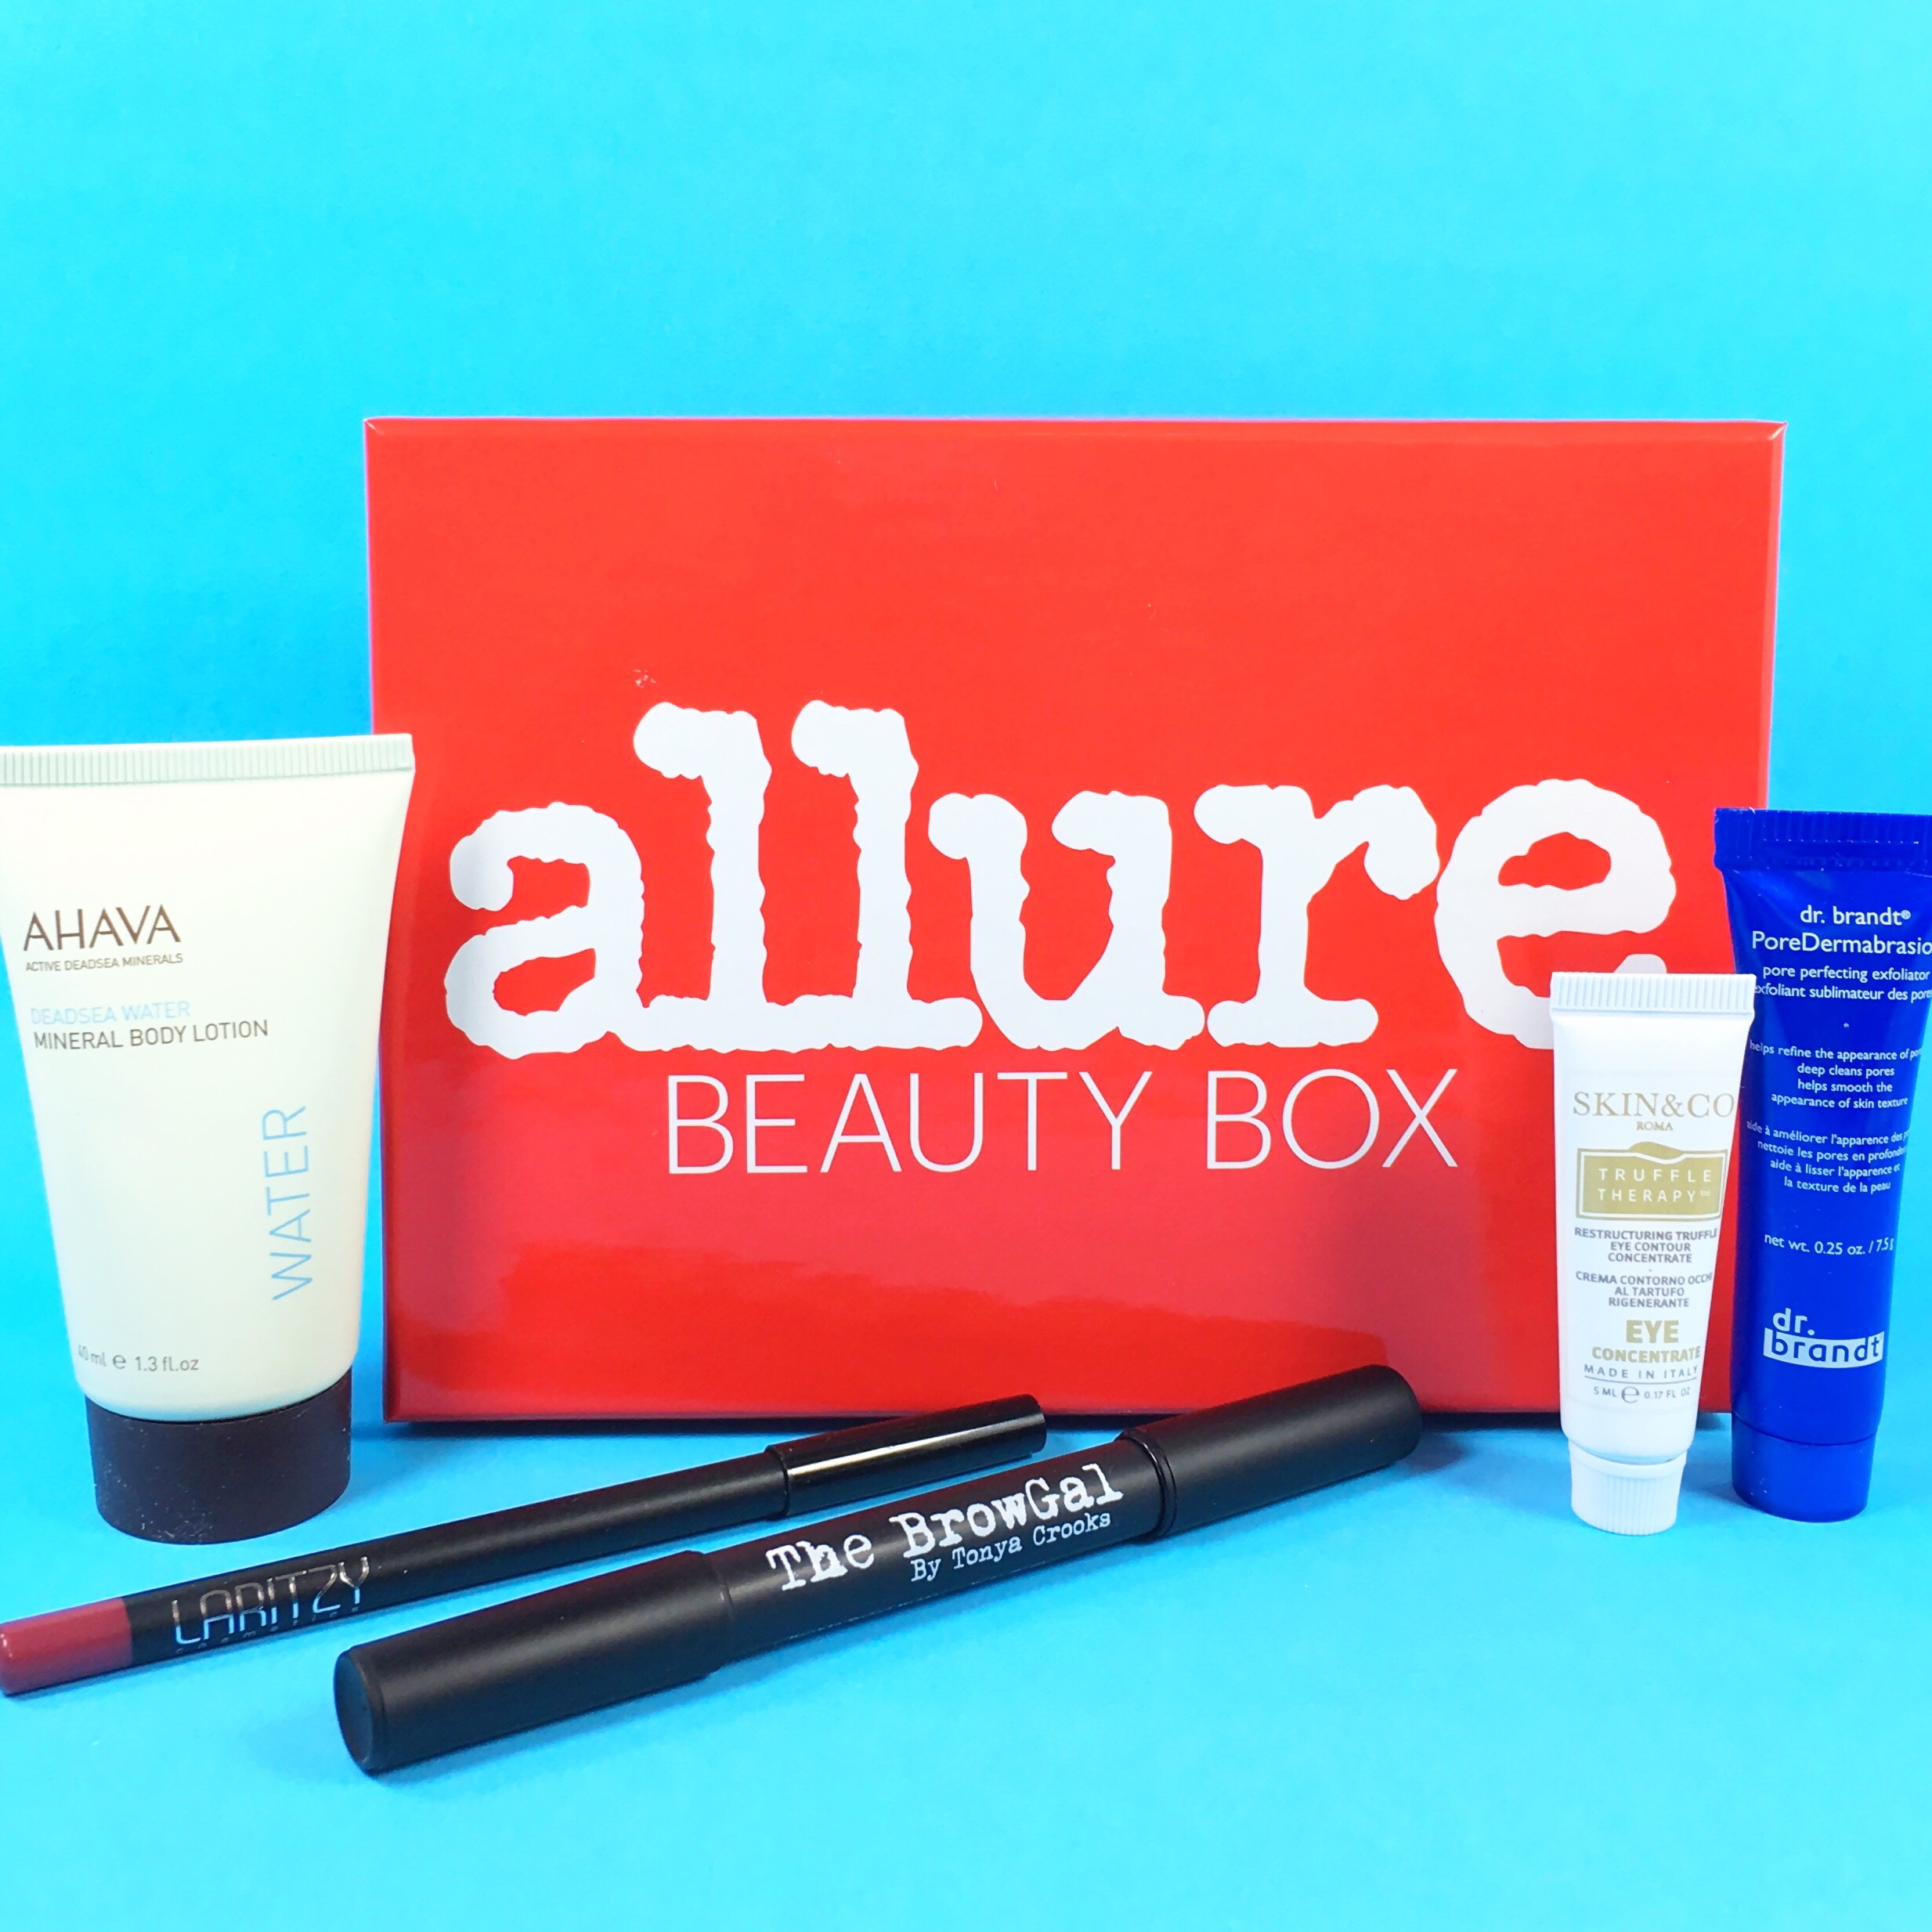 Allure Beauty Box April 2017 Subscription Box Review & Coupon